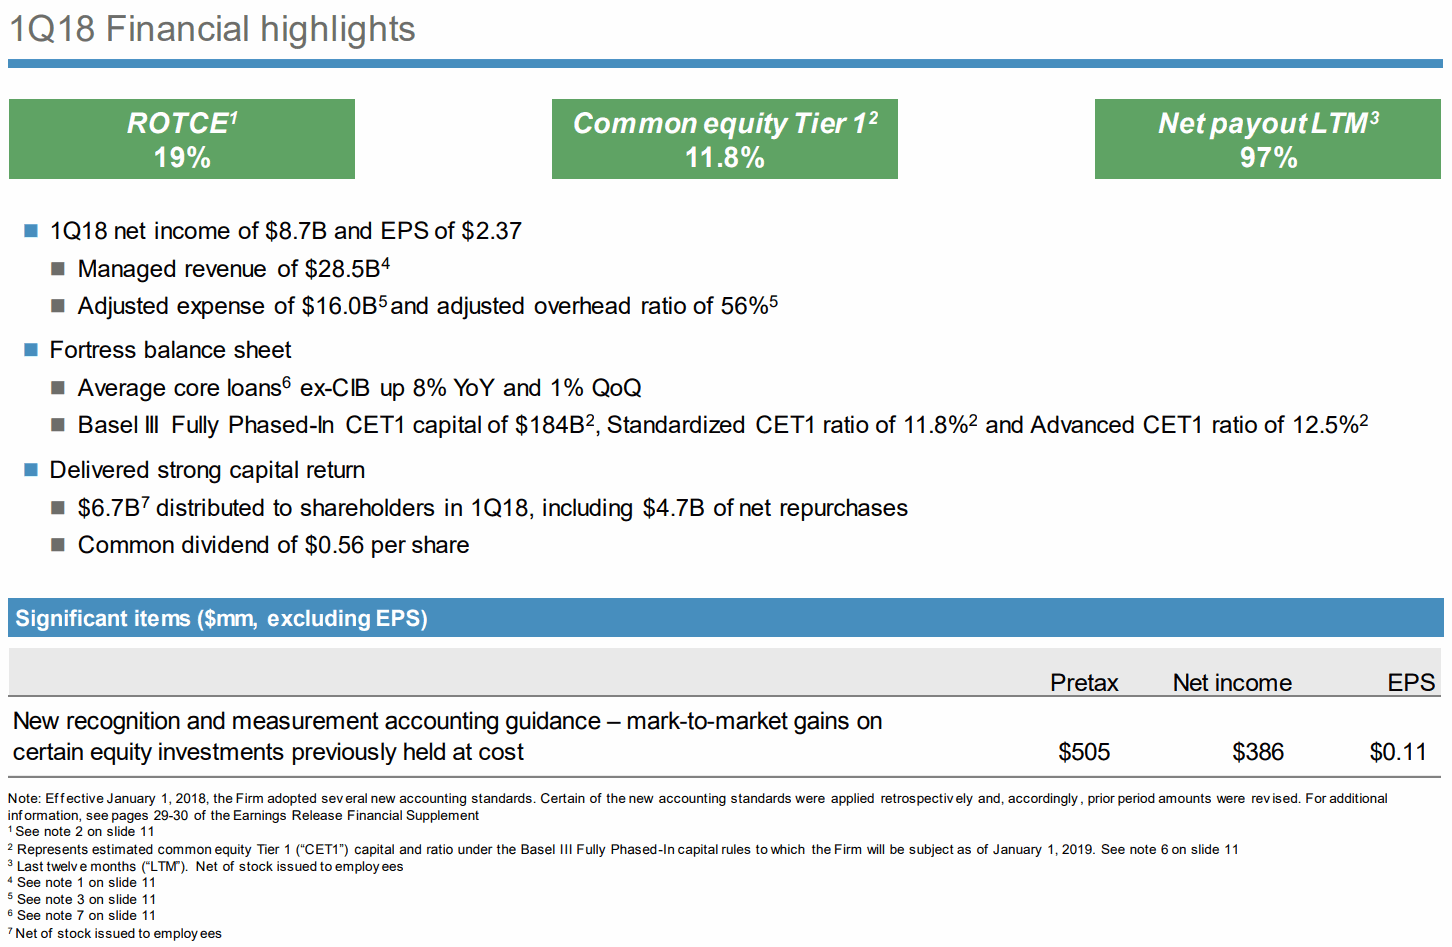 JPMorgan-1Q18-Financial-highlights